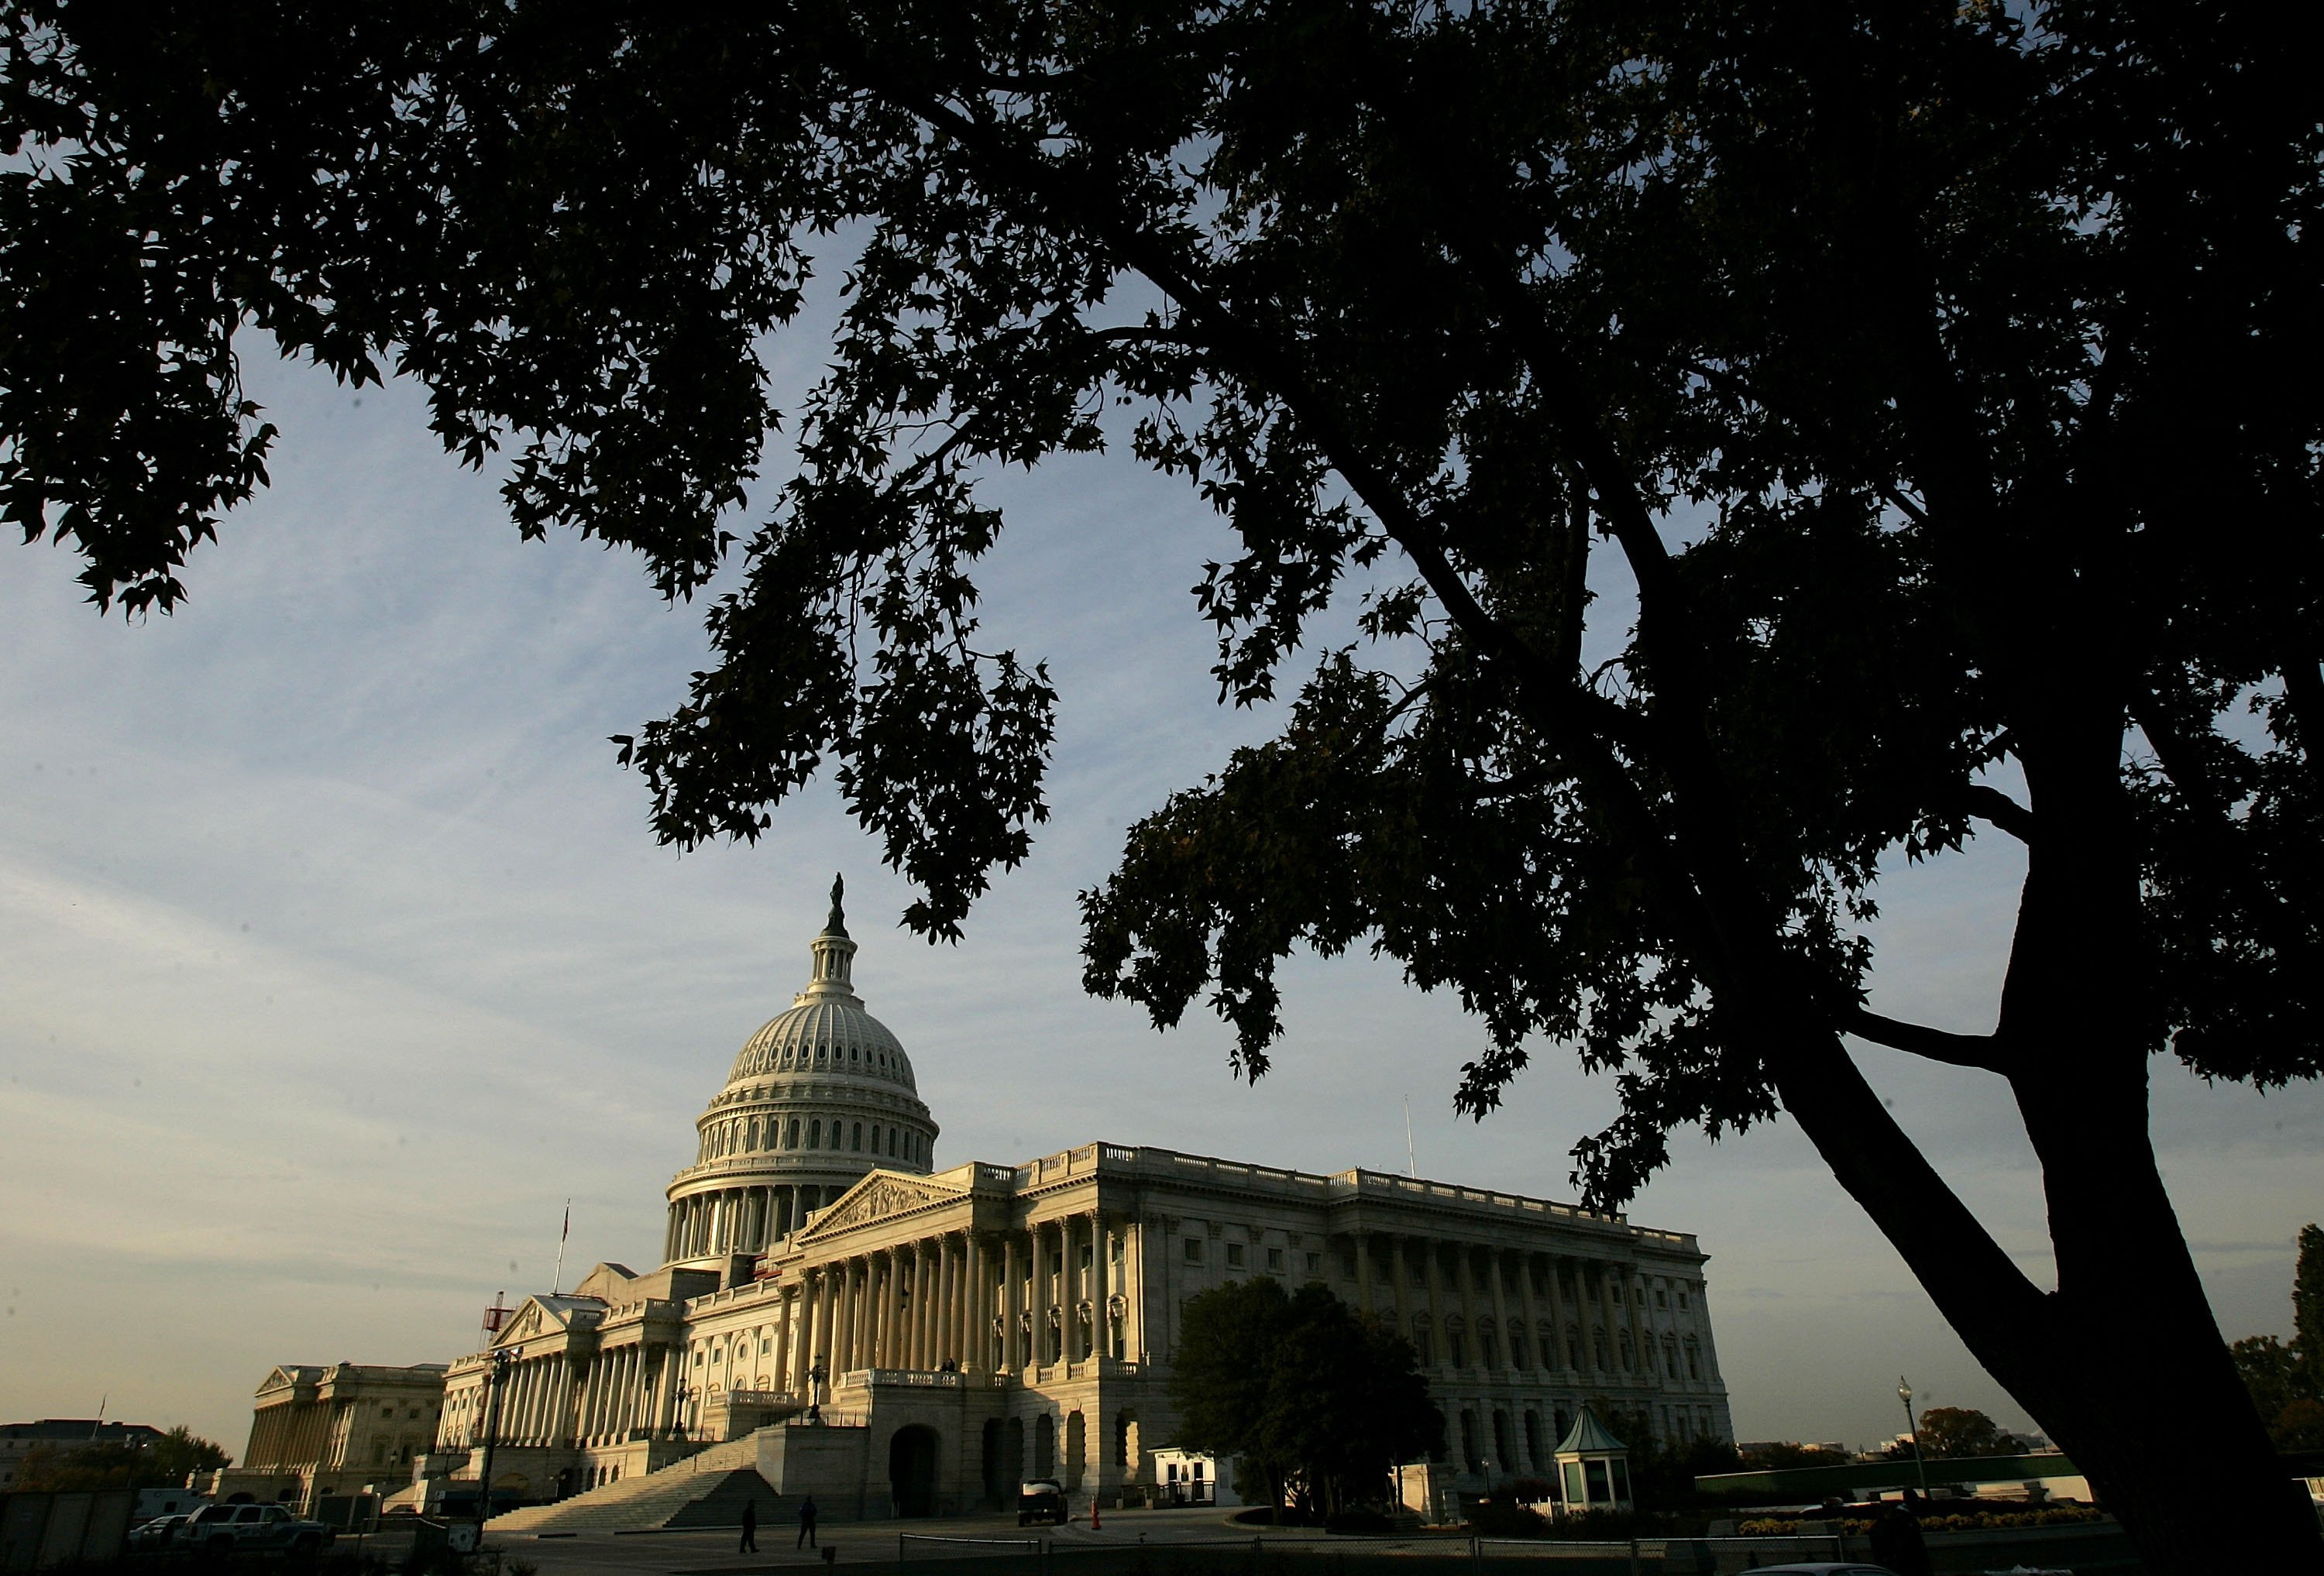 U.S. Capitol evacuated after plane enters airspace